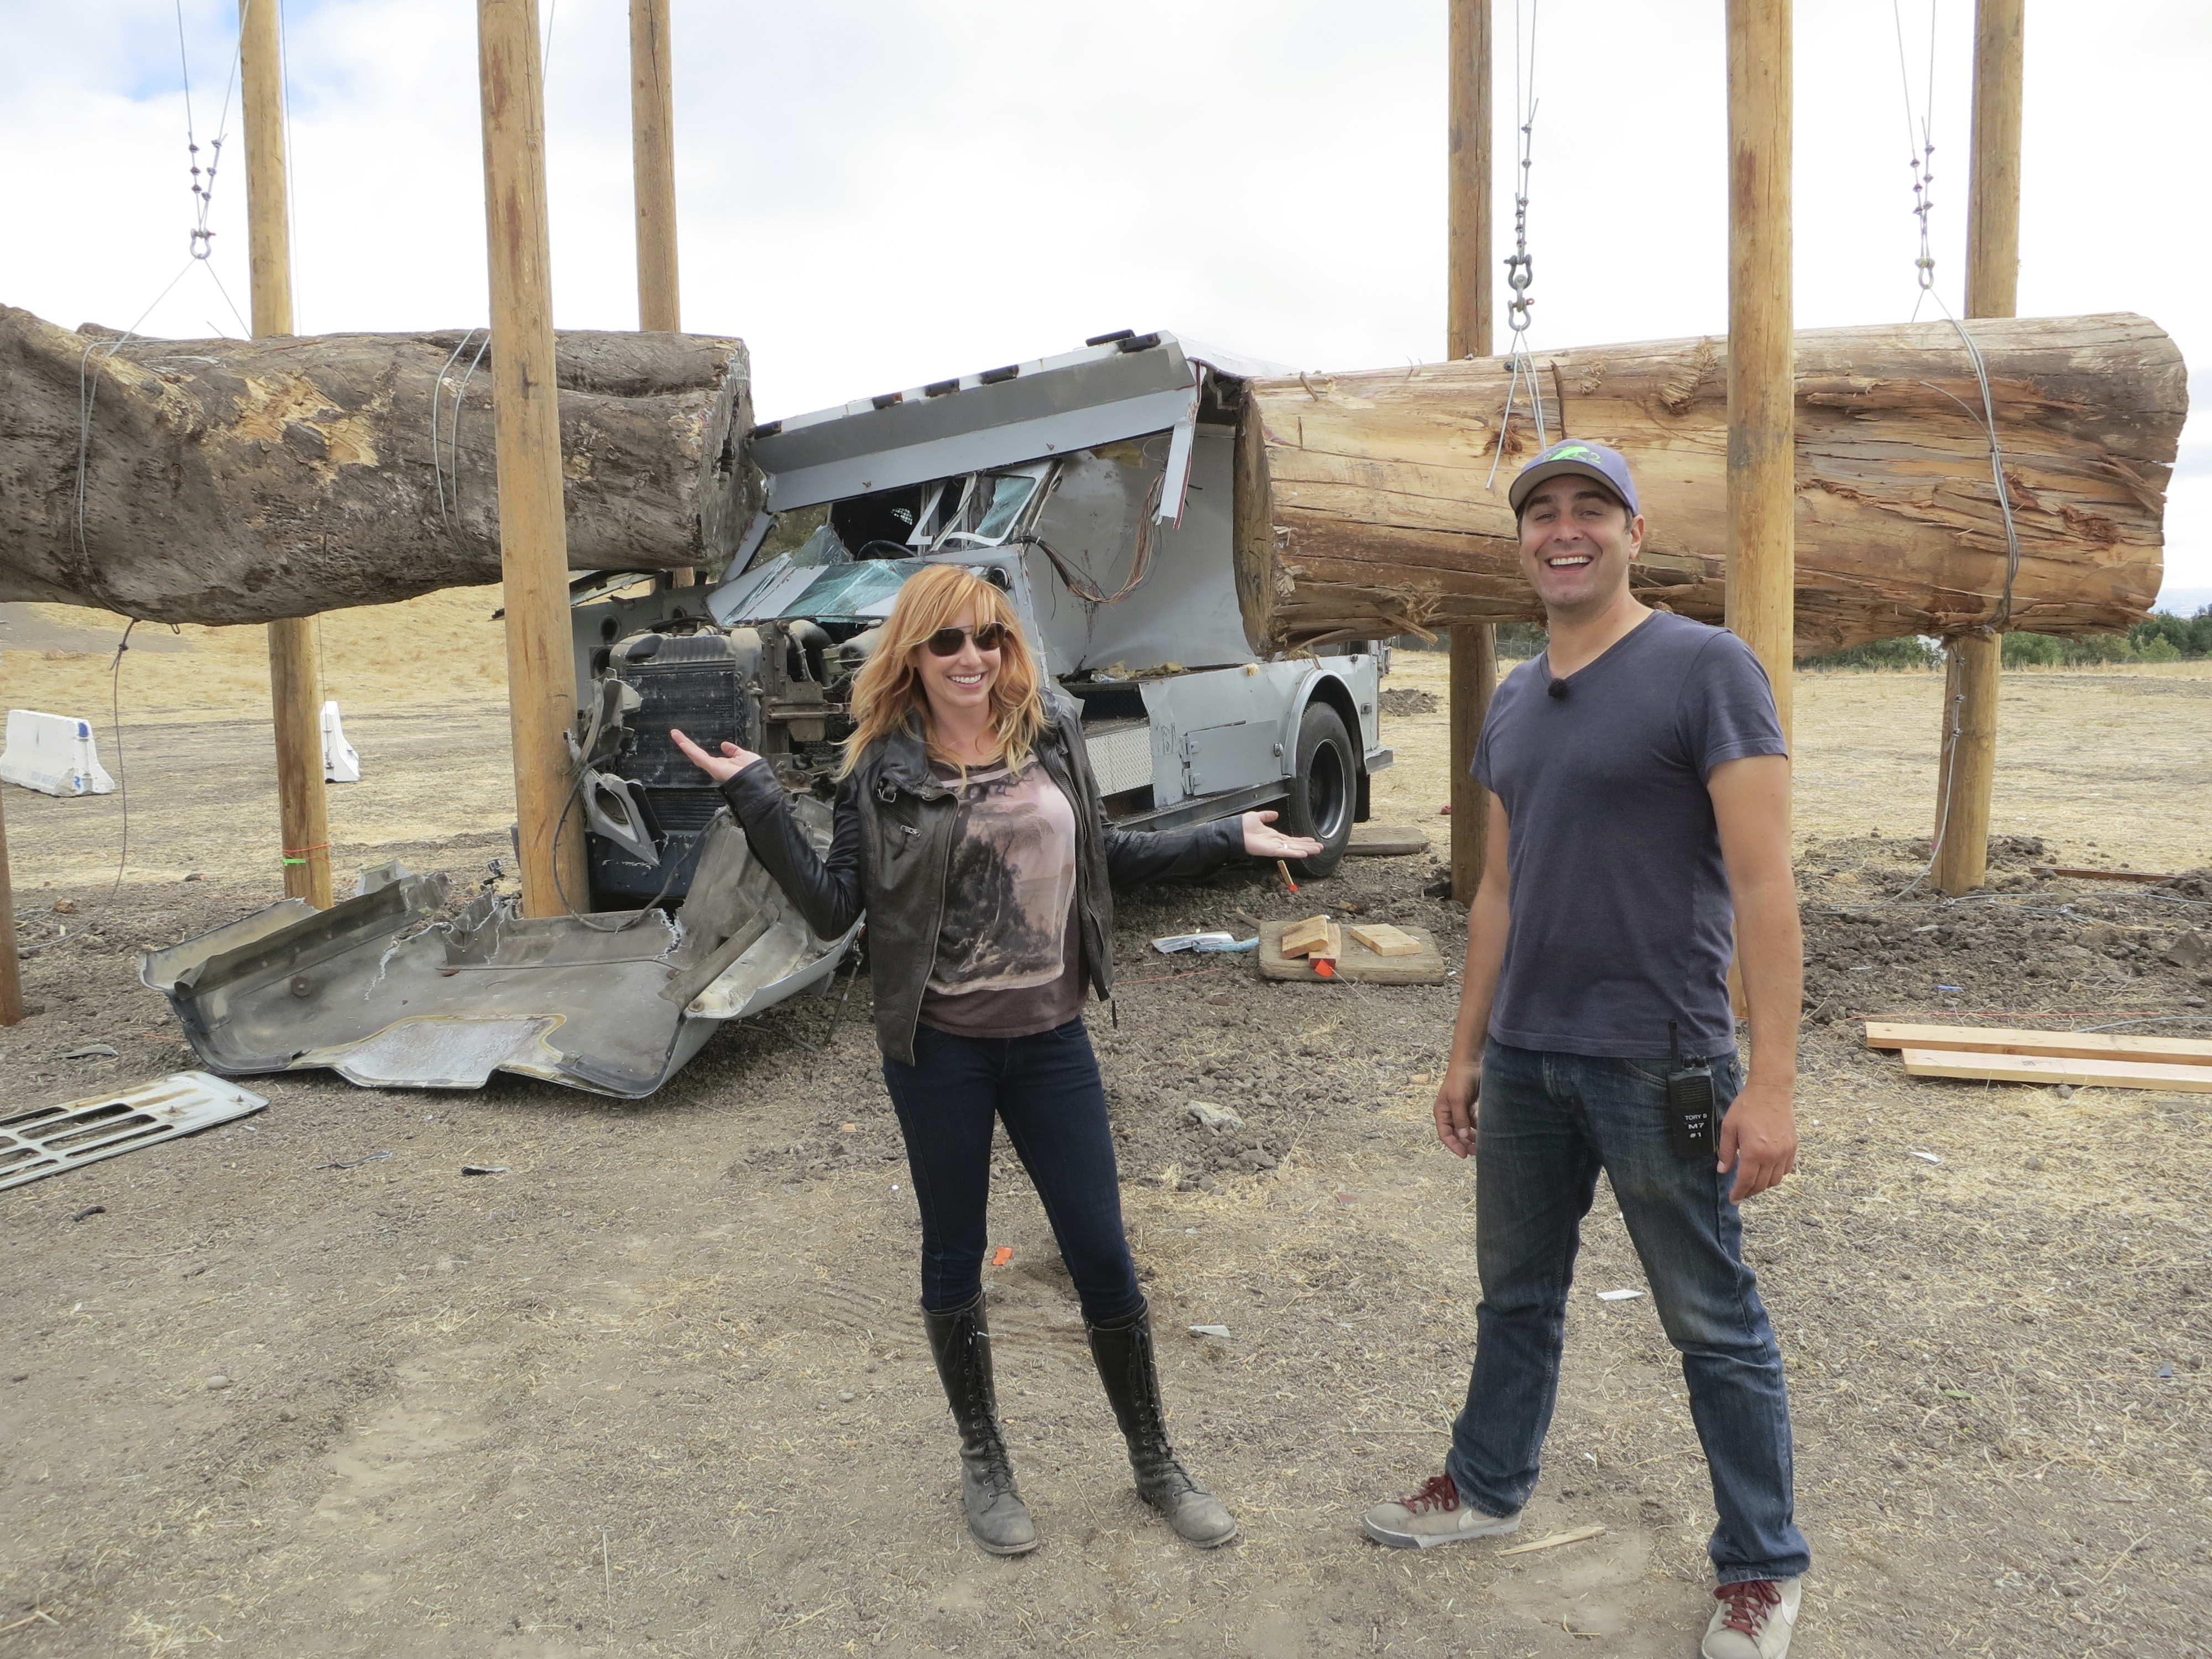 """Who needs Ewoks to take down an AT-ST when you have """"MythBusters"""" team members Kari Byron and Tory Belleci on your side?"""